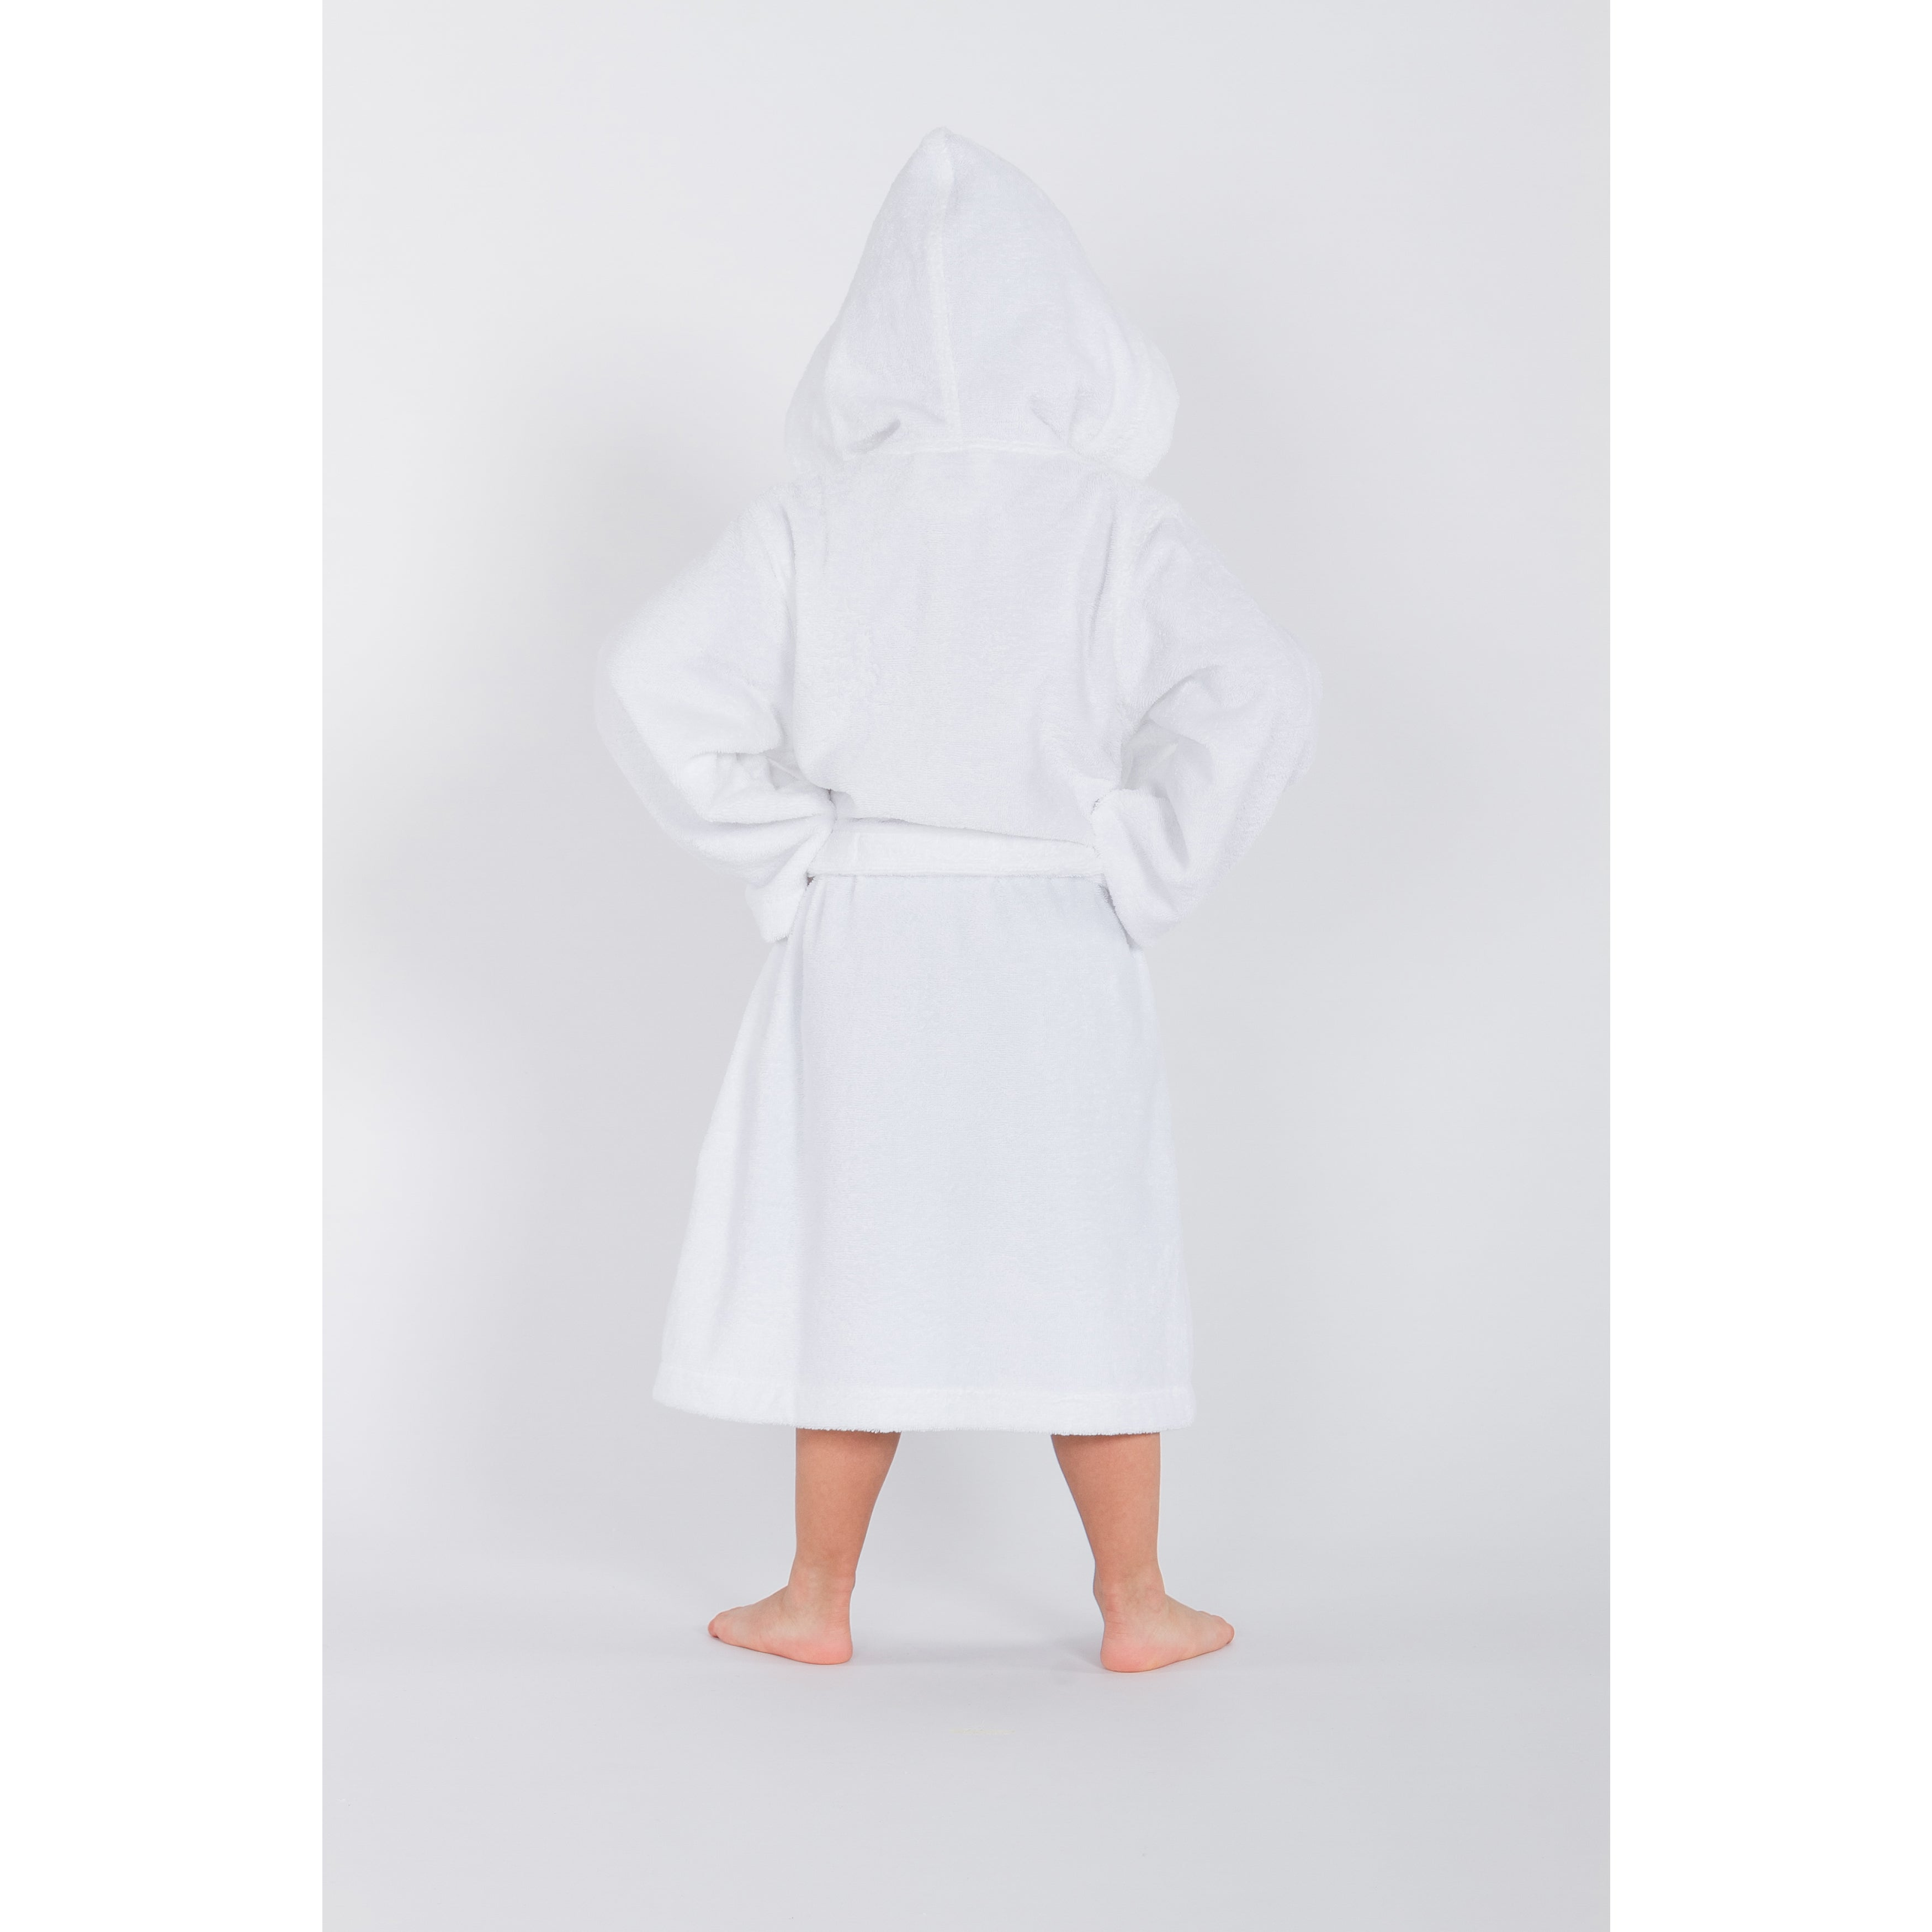 2eb80bc43e Shop Sweet Kids White Turkish Cotton Hooded Unisex Terry Bathrobe - Free  Shipping On Orders Over  45 - Overstock - 11408261